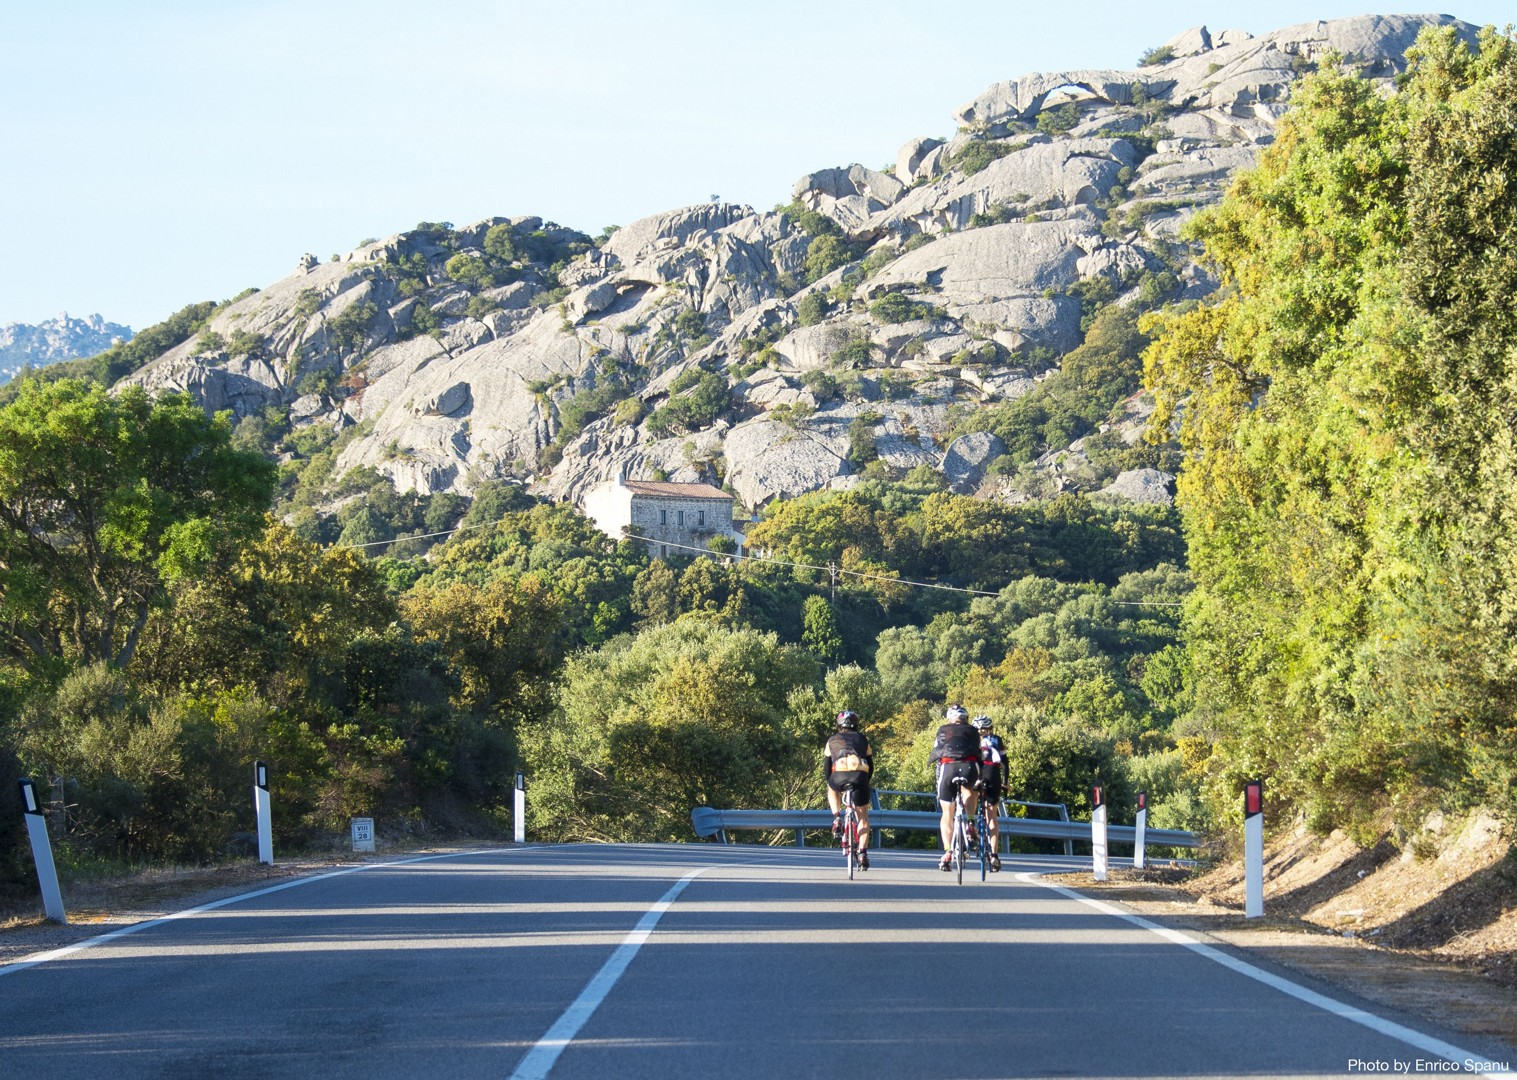 Self-Guided-Road-Cycling-Holiday-Coastal-Explorer-Sardinia-descent-to-Fluminimaggiore-and-Masua.jpg - Italy - Sardinia - Coastal Explorer - Self Guided Road Cycling Holiday - Road Cycling